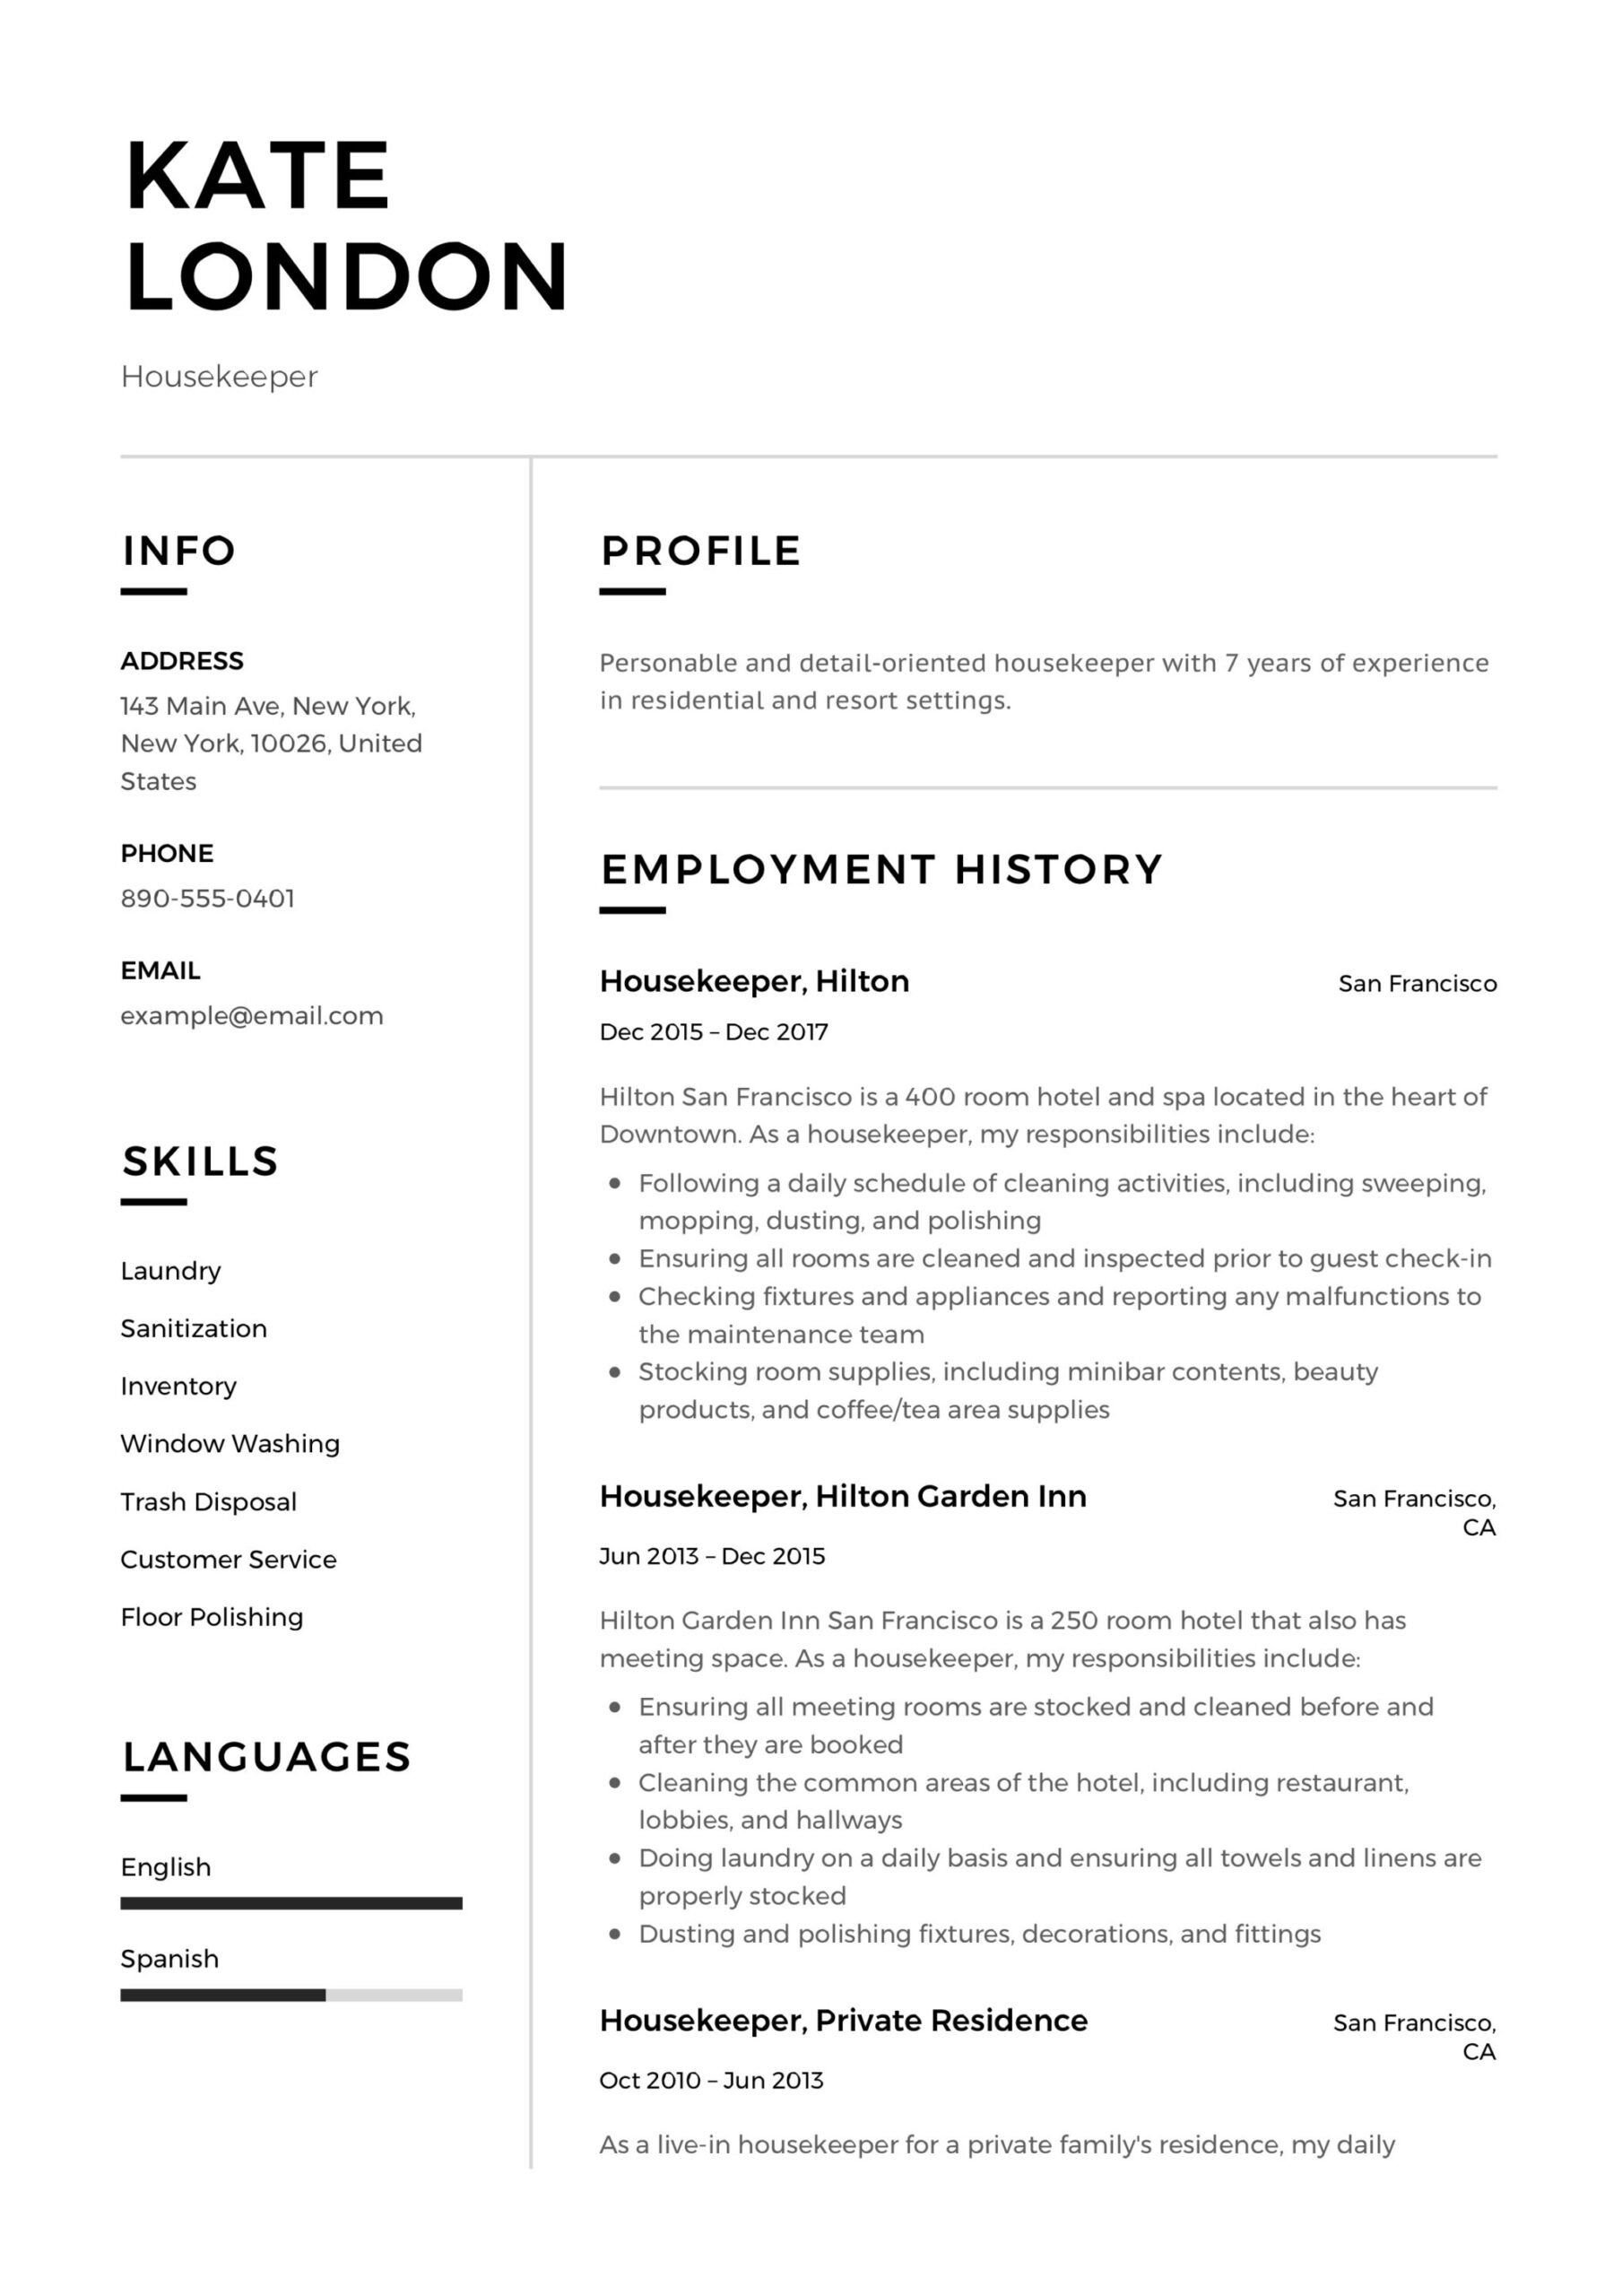 resume guide housekpeer samples pdf housekeeping template free kate london housekeeper Resume Housekeeping Resume Template Free